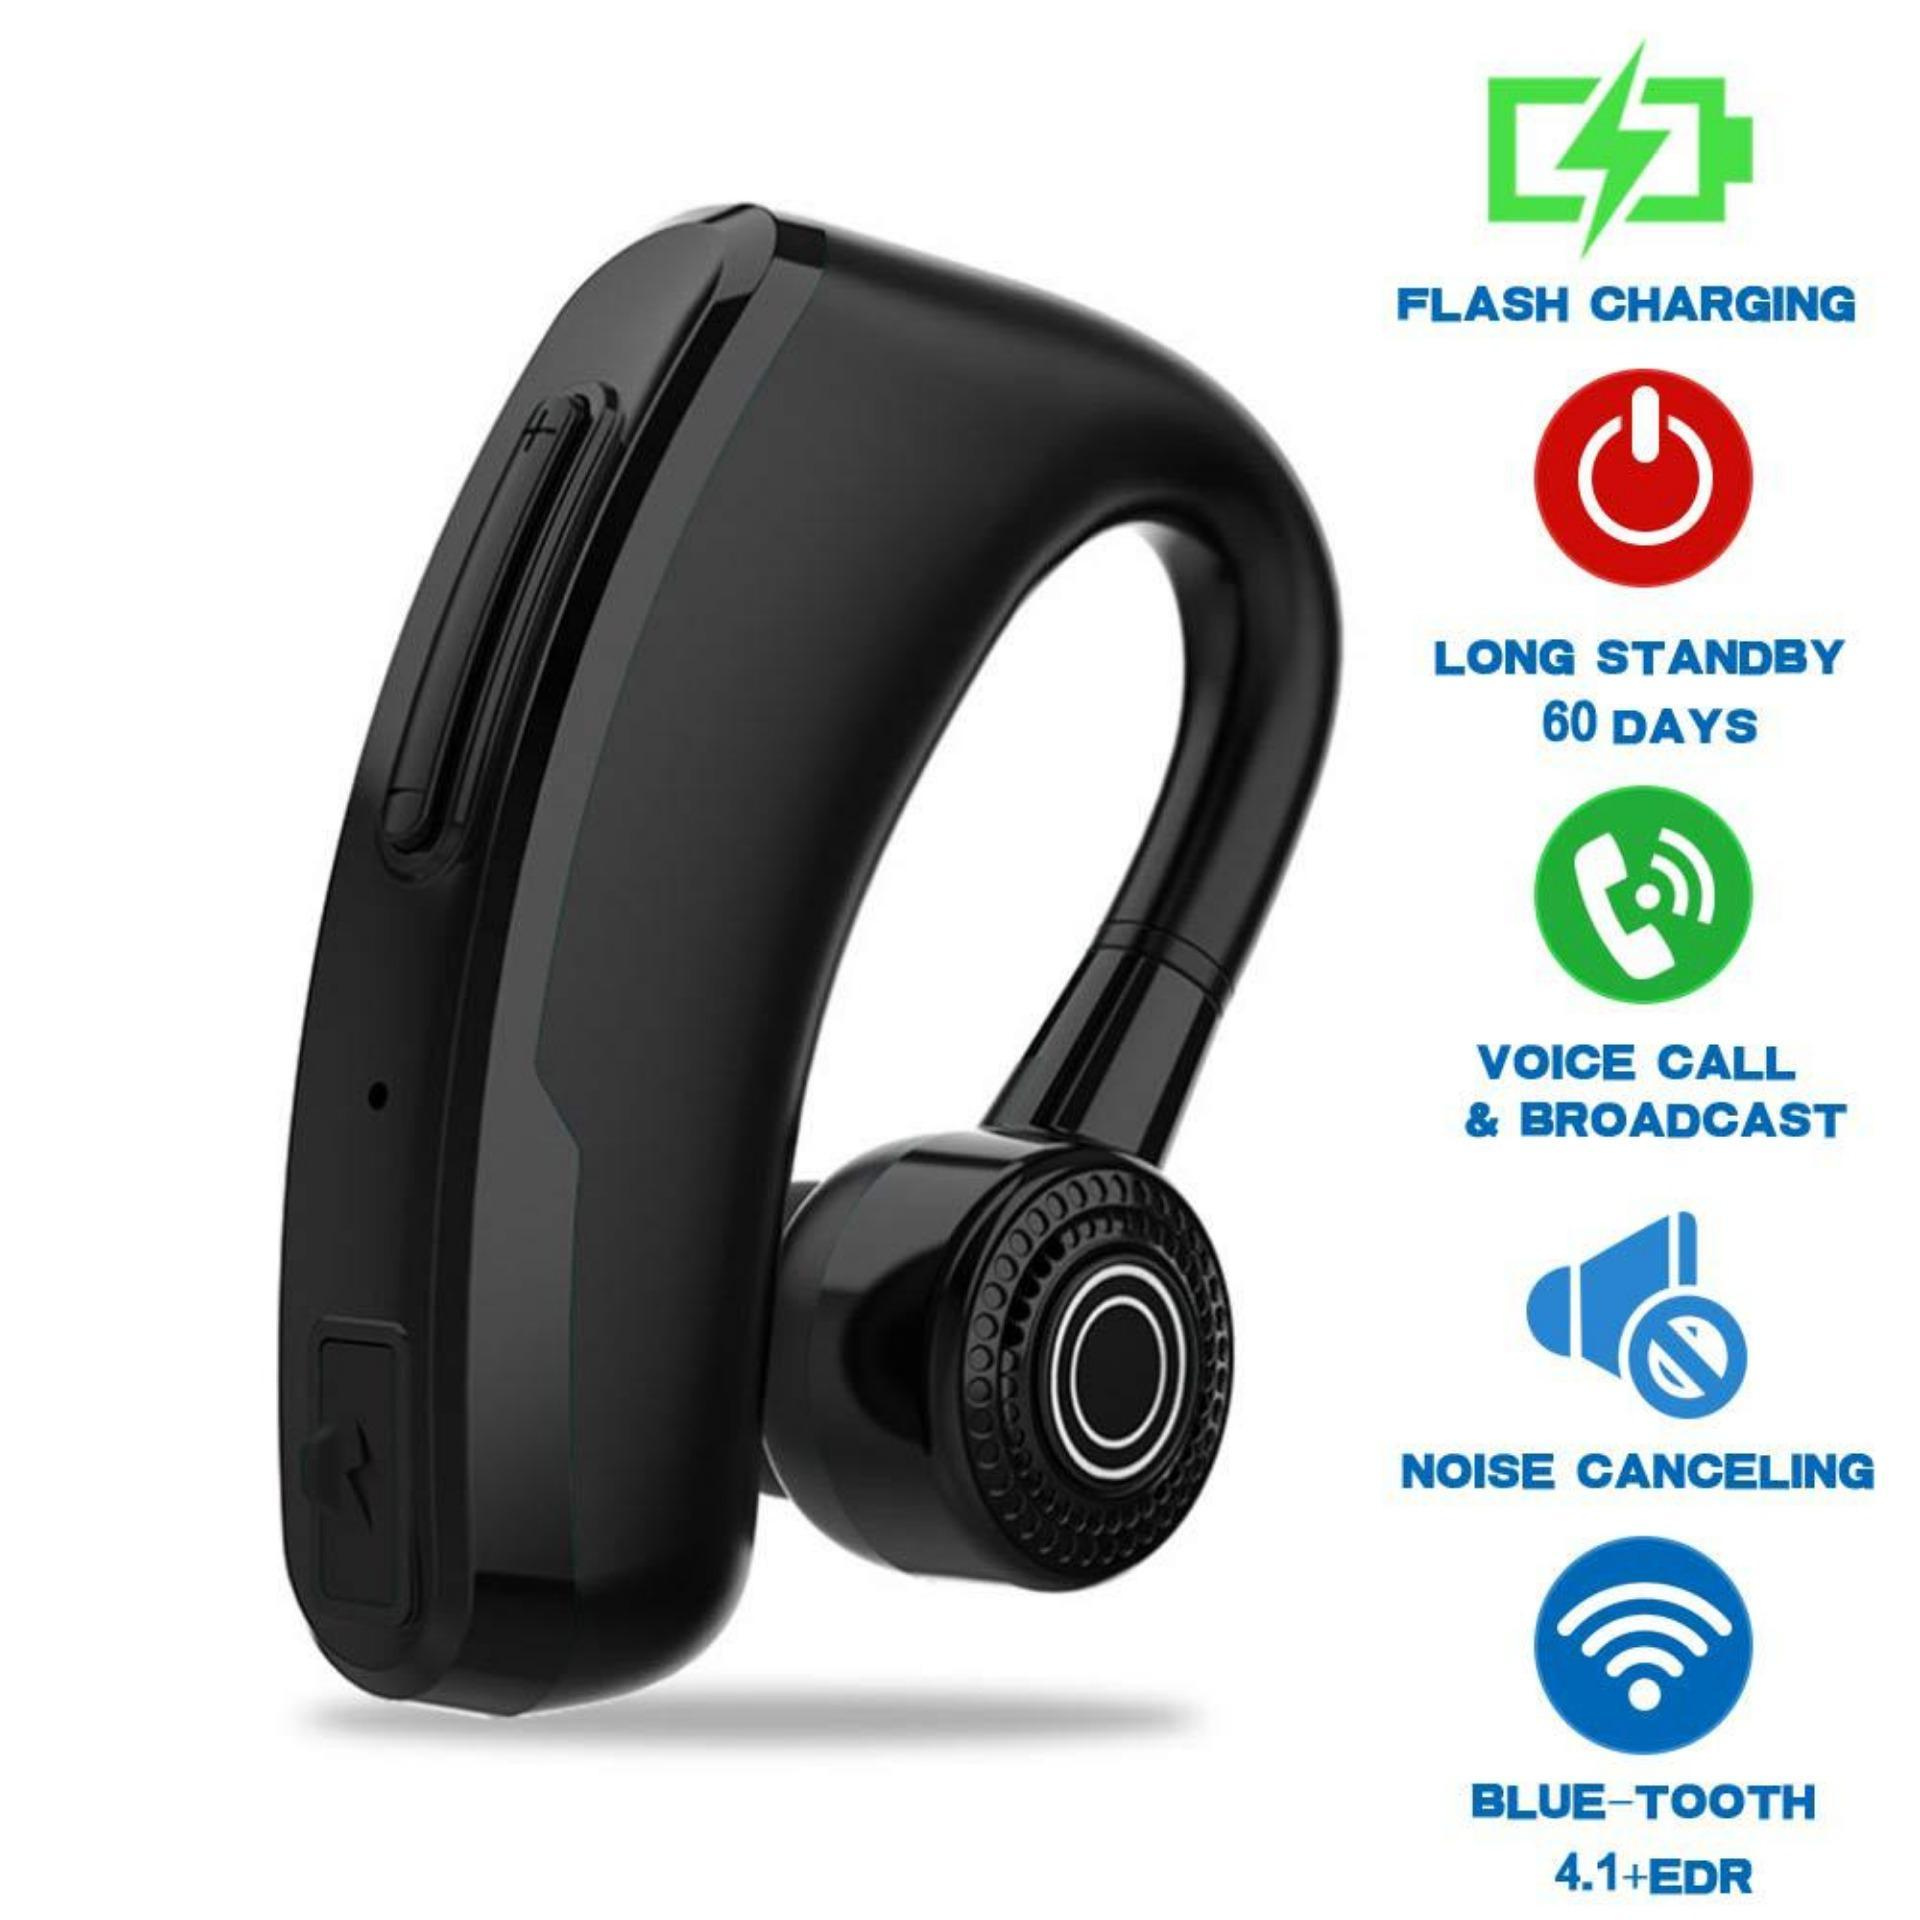 V9 Upgrade Extreme Flash Charge Anti Sweat Waterproof Business 4 1 Bluetooth Headset Car Bluetooth Earpiece Hands Free With Mic Ear Hook Bluetooth Wireless Earphone For Ios Android Phones Laptop Computers Buy Online At Best Prices In Pakistan